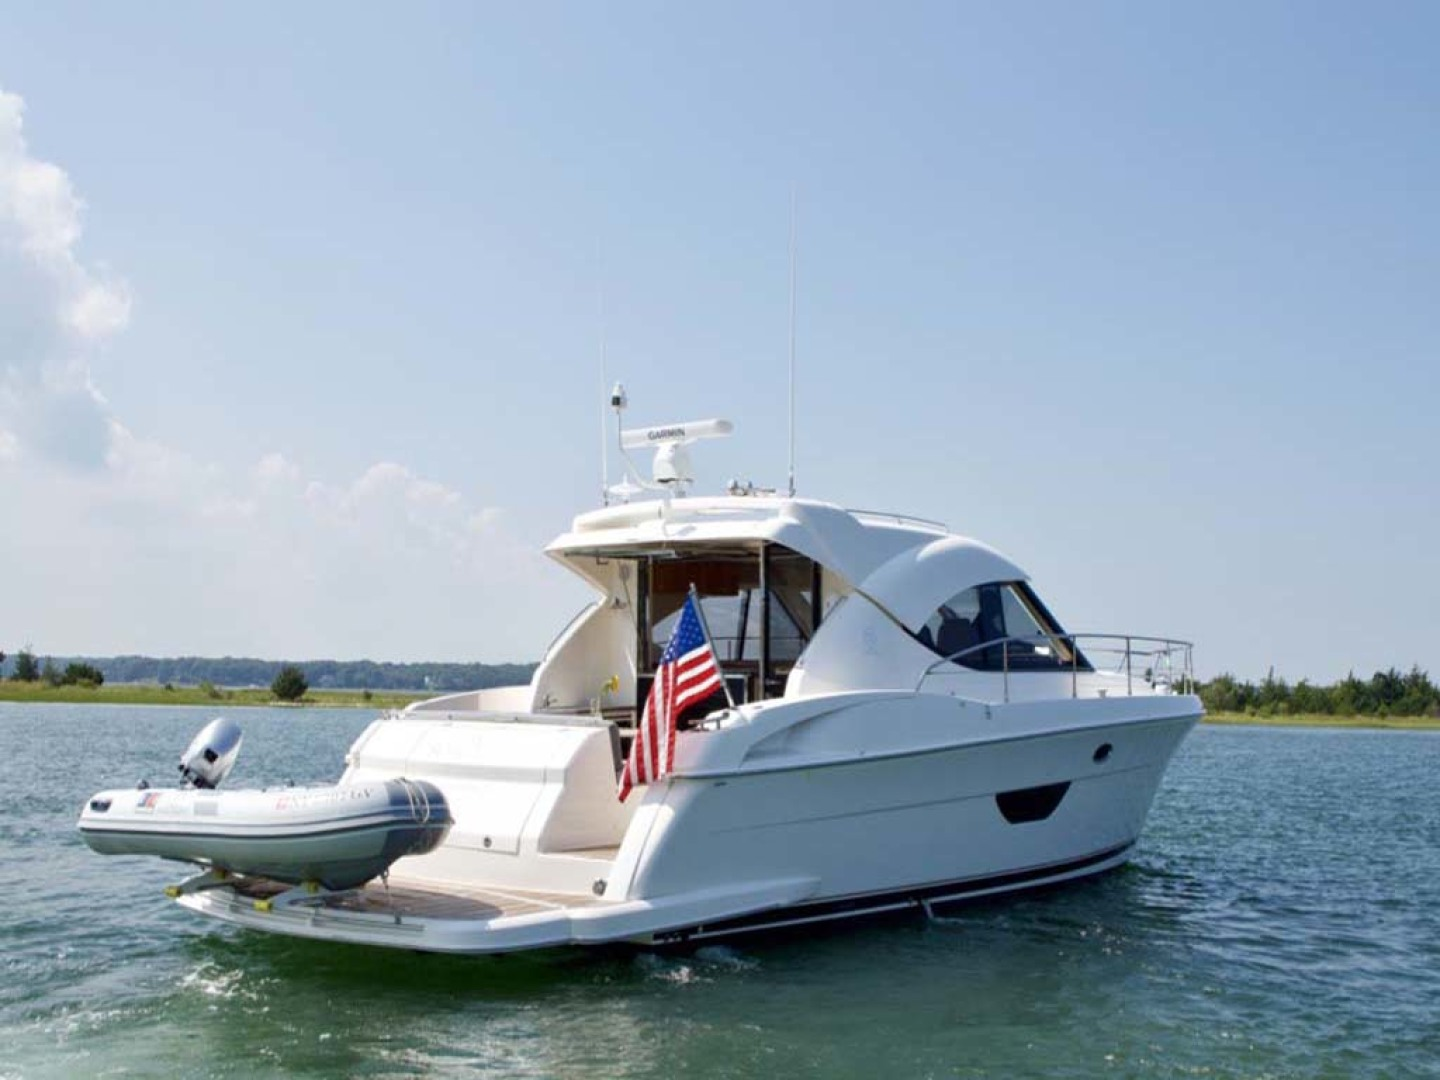 Riviera-4400 Sport Yacht 2009-Soul Mates Long Island-United States-44 Riviera 2009 Starboard Profile-1062527 | Thumbnail